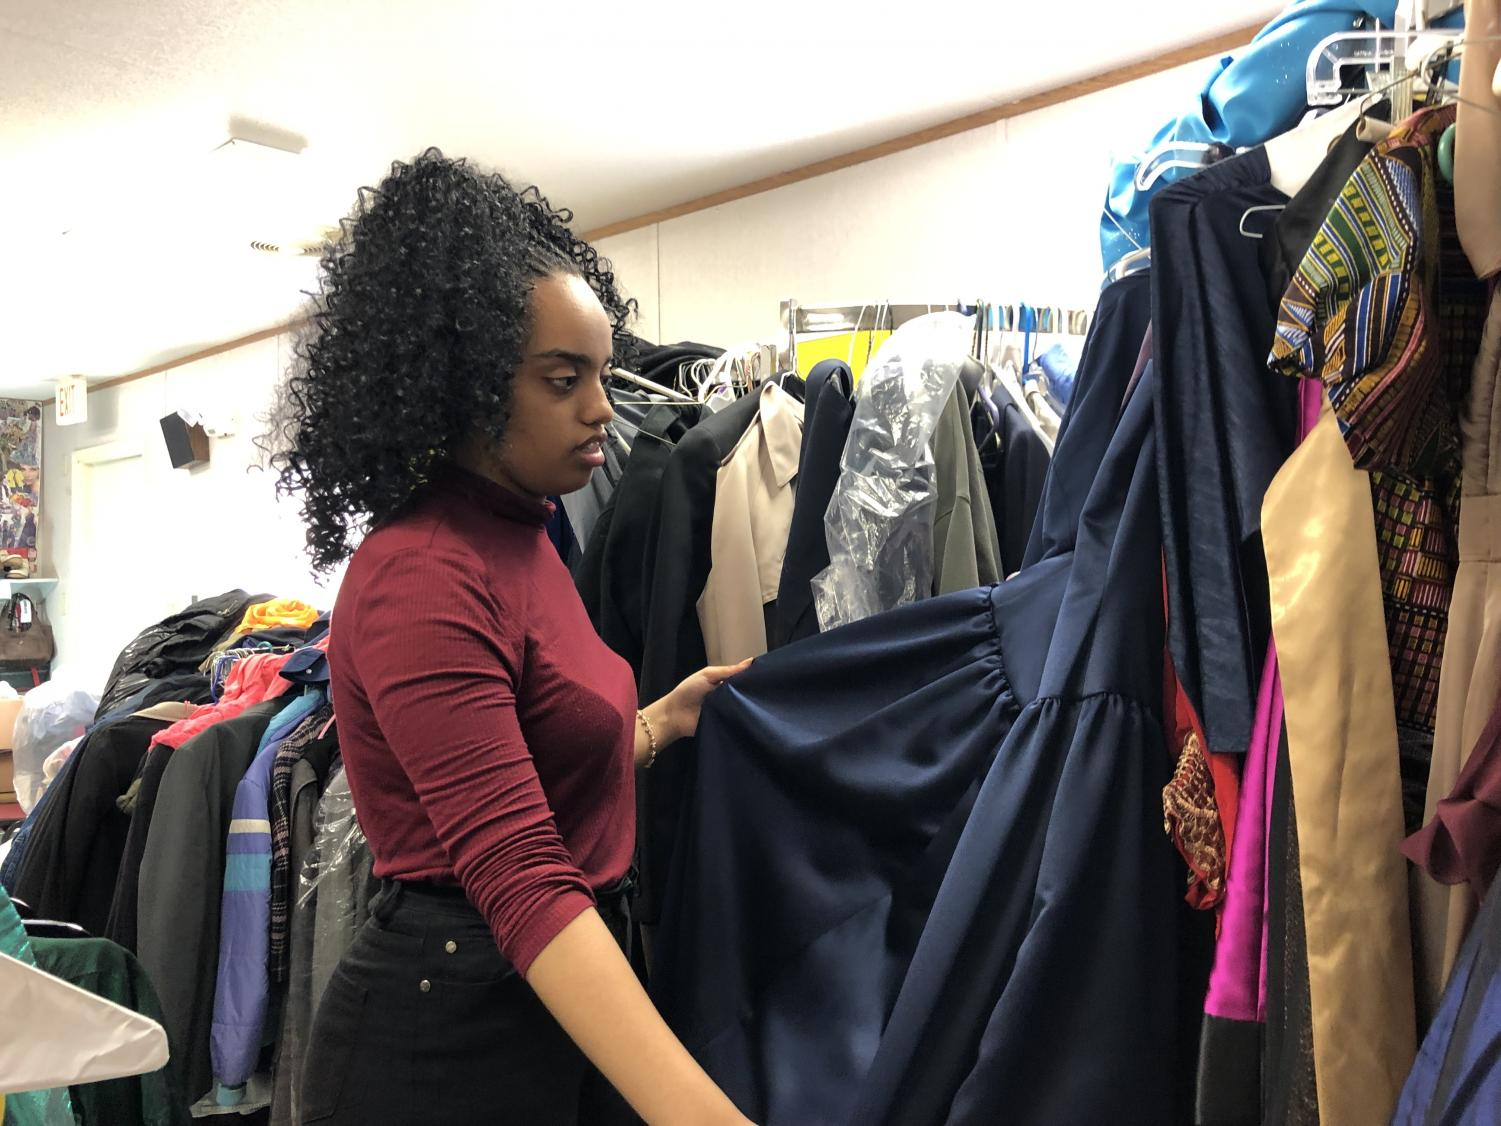 Senior Hemen Besufekad looks at donated prom dress in the Parent Resource Center. Pop-up shop will begin Wed. March 20 from 3 p.m. to 6 p.m. and Thurs. March 21 from 6 p.m. to 8 p.m.